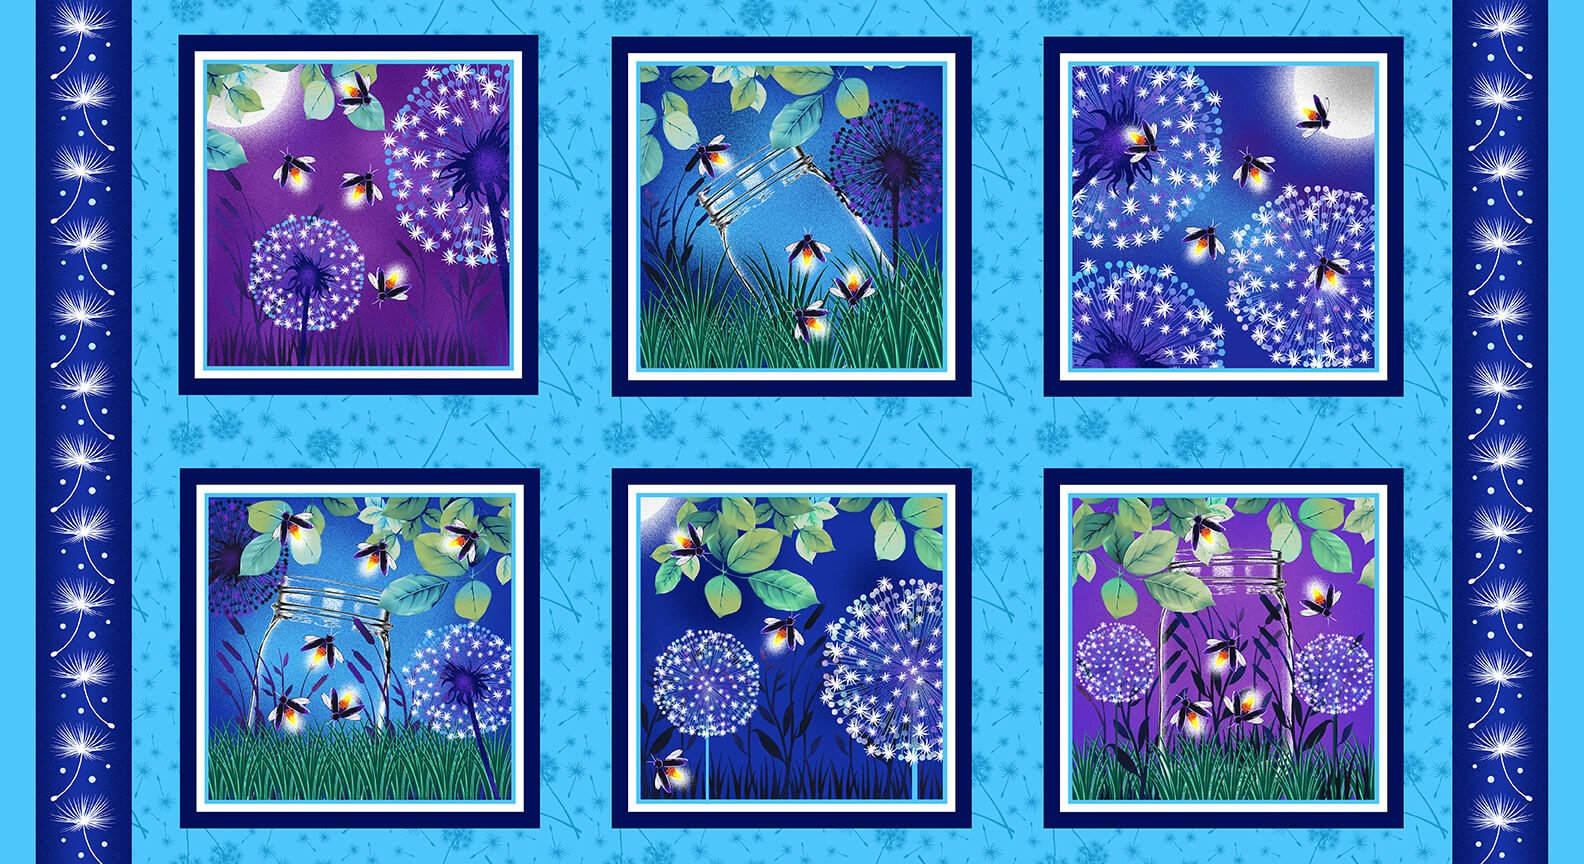 Blank - Let Your Light Shine 1373G-17 Blocks PANEL Fireflies Dandelions Glow in the Dark